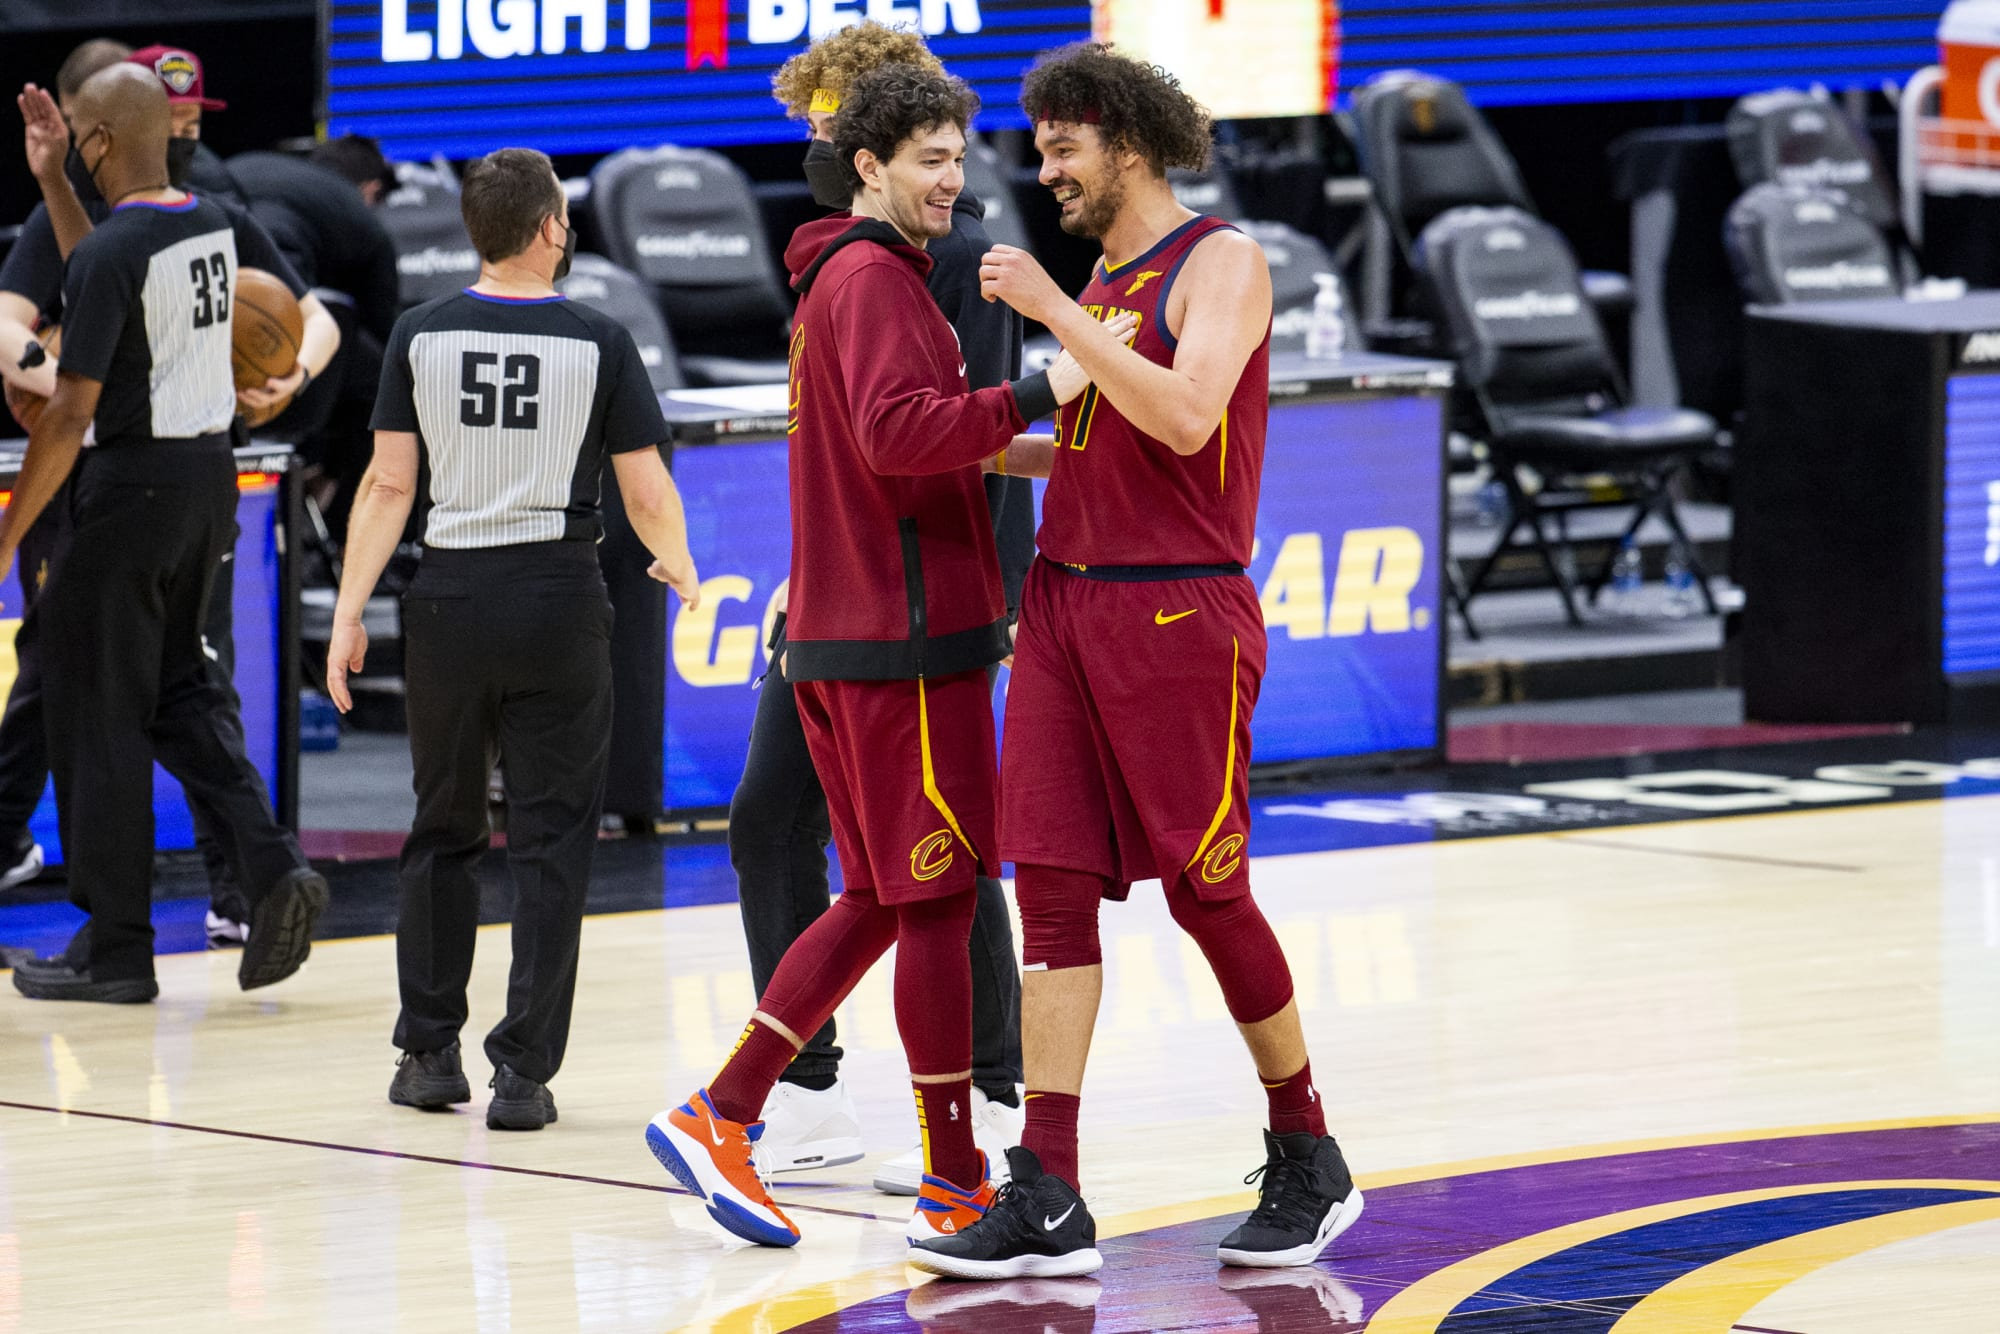 Cavs: Being around Anderson Varejao is big for youngsters